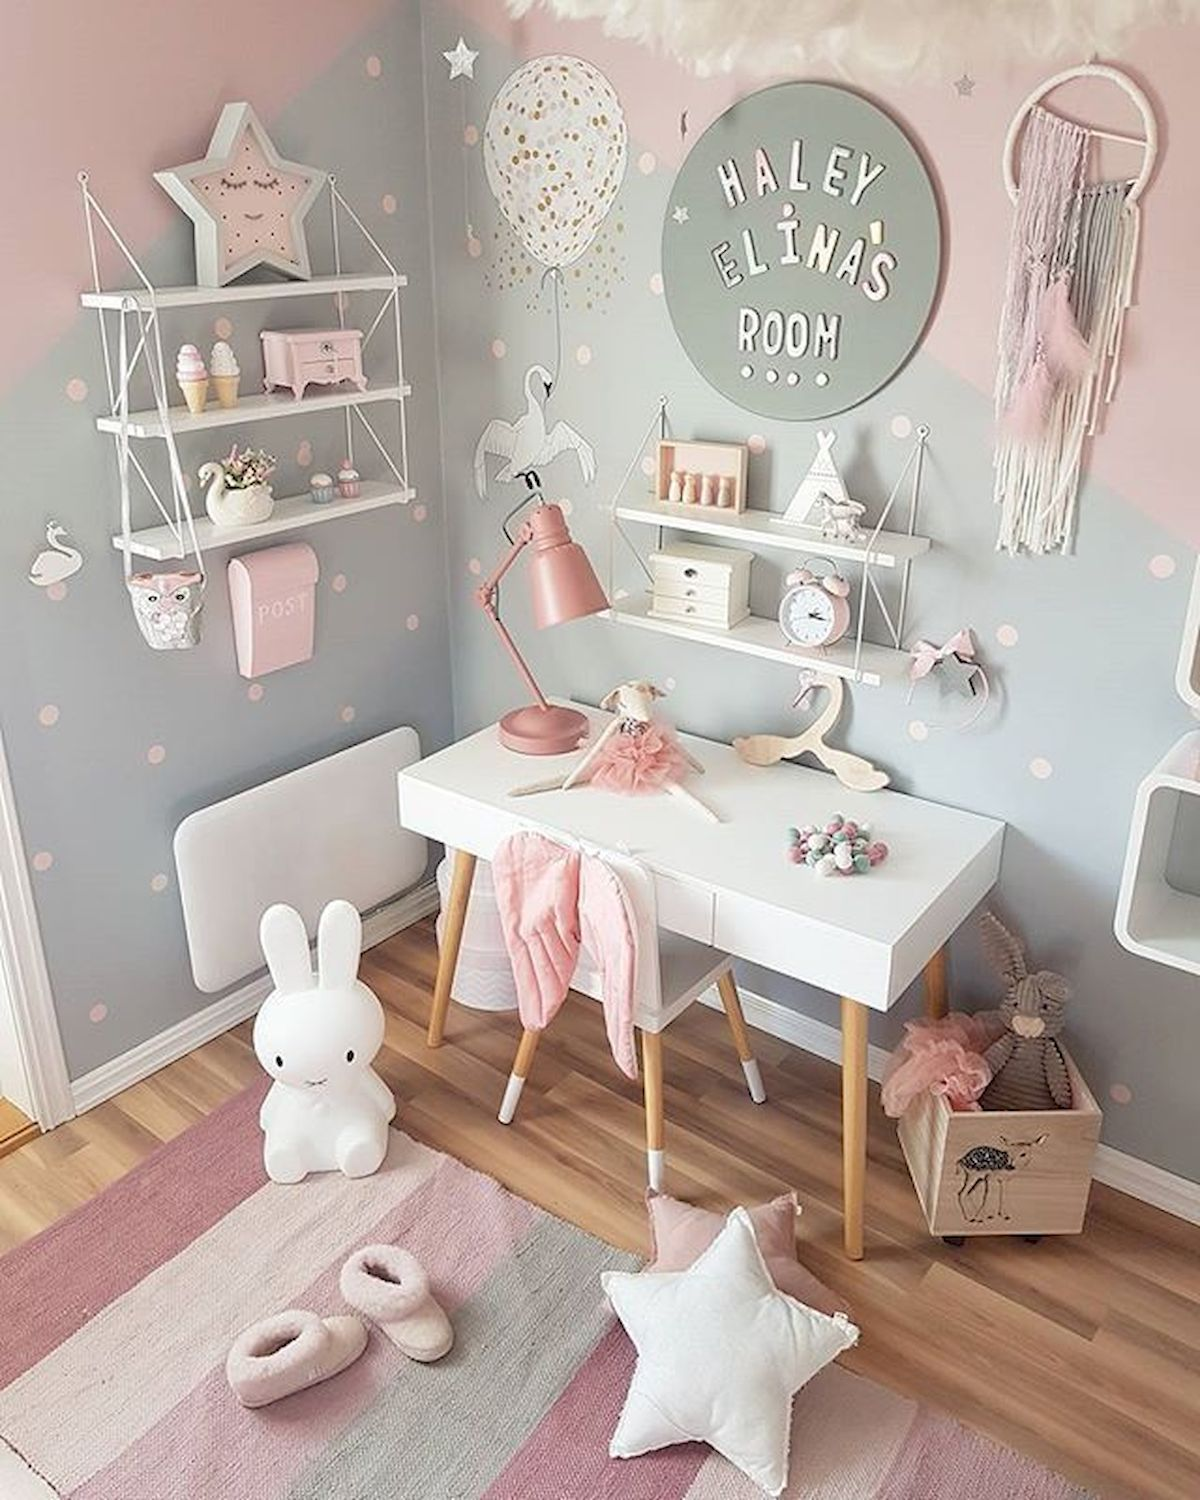 Storage Ideas For Rooms And Children's Playgrounds - jihanshanum #girlsbedroom